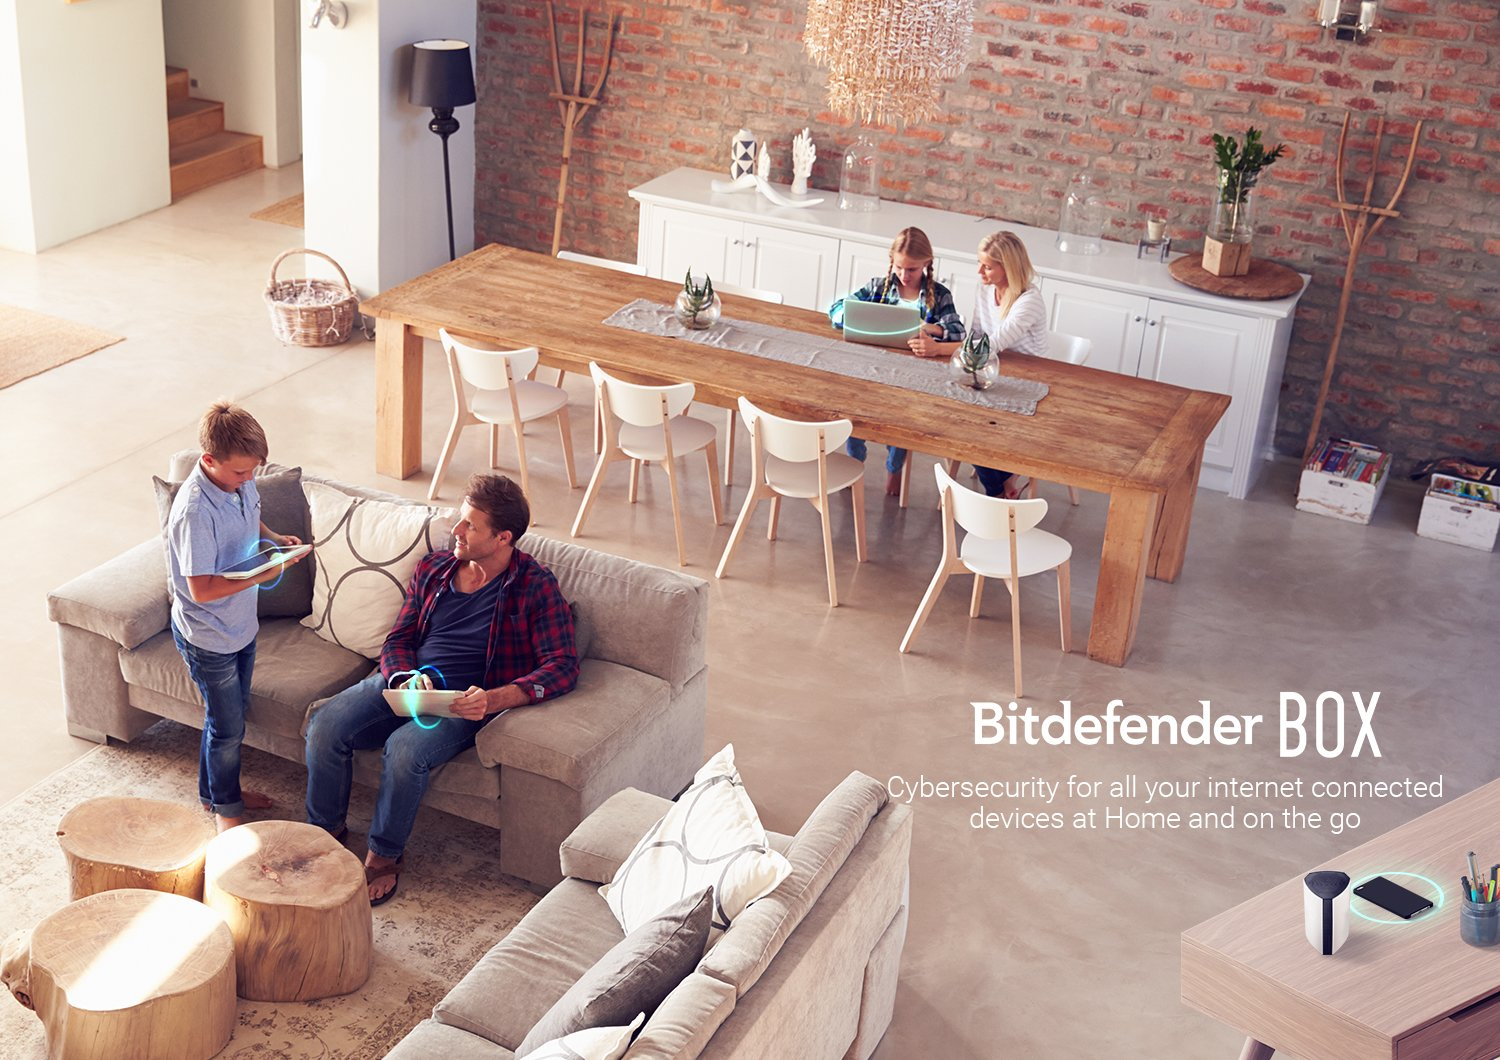 Bitdefender BOX 2 (Latest Version) - Complete Home Network Protection for Your WiFi, Computers, Mobile/Smart Devices and More, Including Alexa and Google Assistant Integration - Plugs Into Your Router 6 Plugs into your (Non-Mesh/Non Google WiFi) router and protects an unlimited number of Wi-Fi and internet connected devices Includes free unlimited BOX support and product setup (a $39.99 value). Before buying, please make sure that your Router can be configured to AP (access point) mode or Bridge mode otherwise BOX 2 will not work BOX automatically detects and optimizes for all your devices during the first 48 hour post-install window. Once complete, experience a protected network with speeds up to 1 Gbps thanks to the 1.2 GHz Dual Core processor and dual 1 Gbps ethernet ports